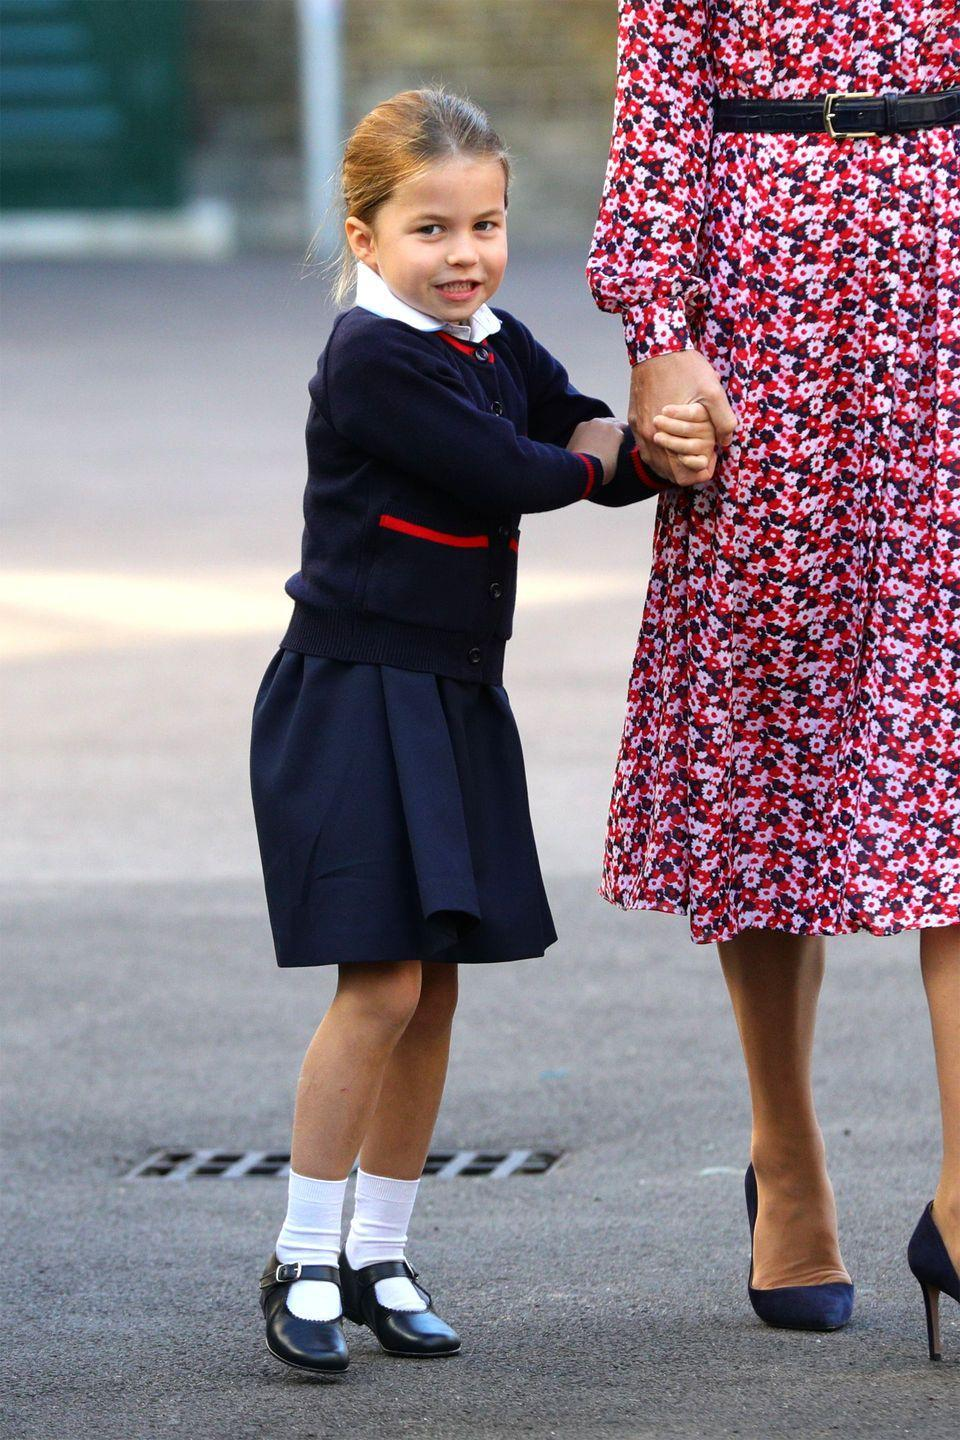 "<p>Charlotte clings onto her mother's hand as they draw nearer to Thomas's Battersea. Soon after, Kate <a href=""https://www.harpersbazaar.com/celebrity/latest/a28925140/kate-middleton-princess-charlotte-school-advice/"" rel=""nofollow noopener"" target=""_blank"" data-ylk=""slk:was heard"" class=""link rapid-noclick-resp"">was heard</a> giving her some encouraging advice. </p>"